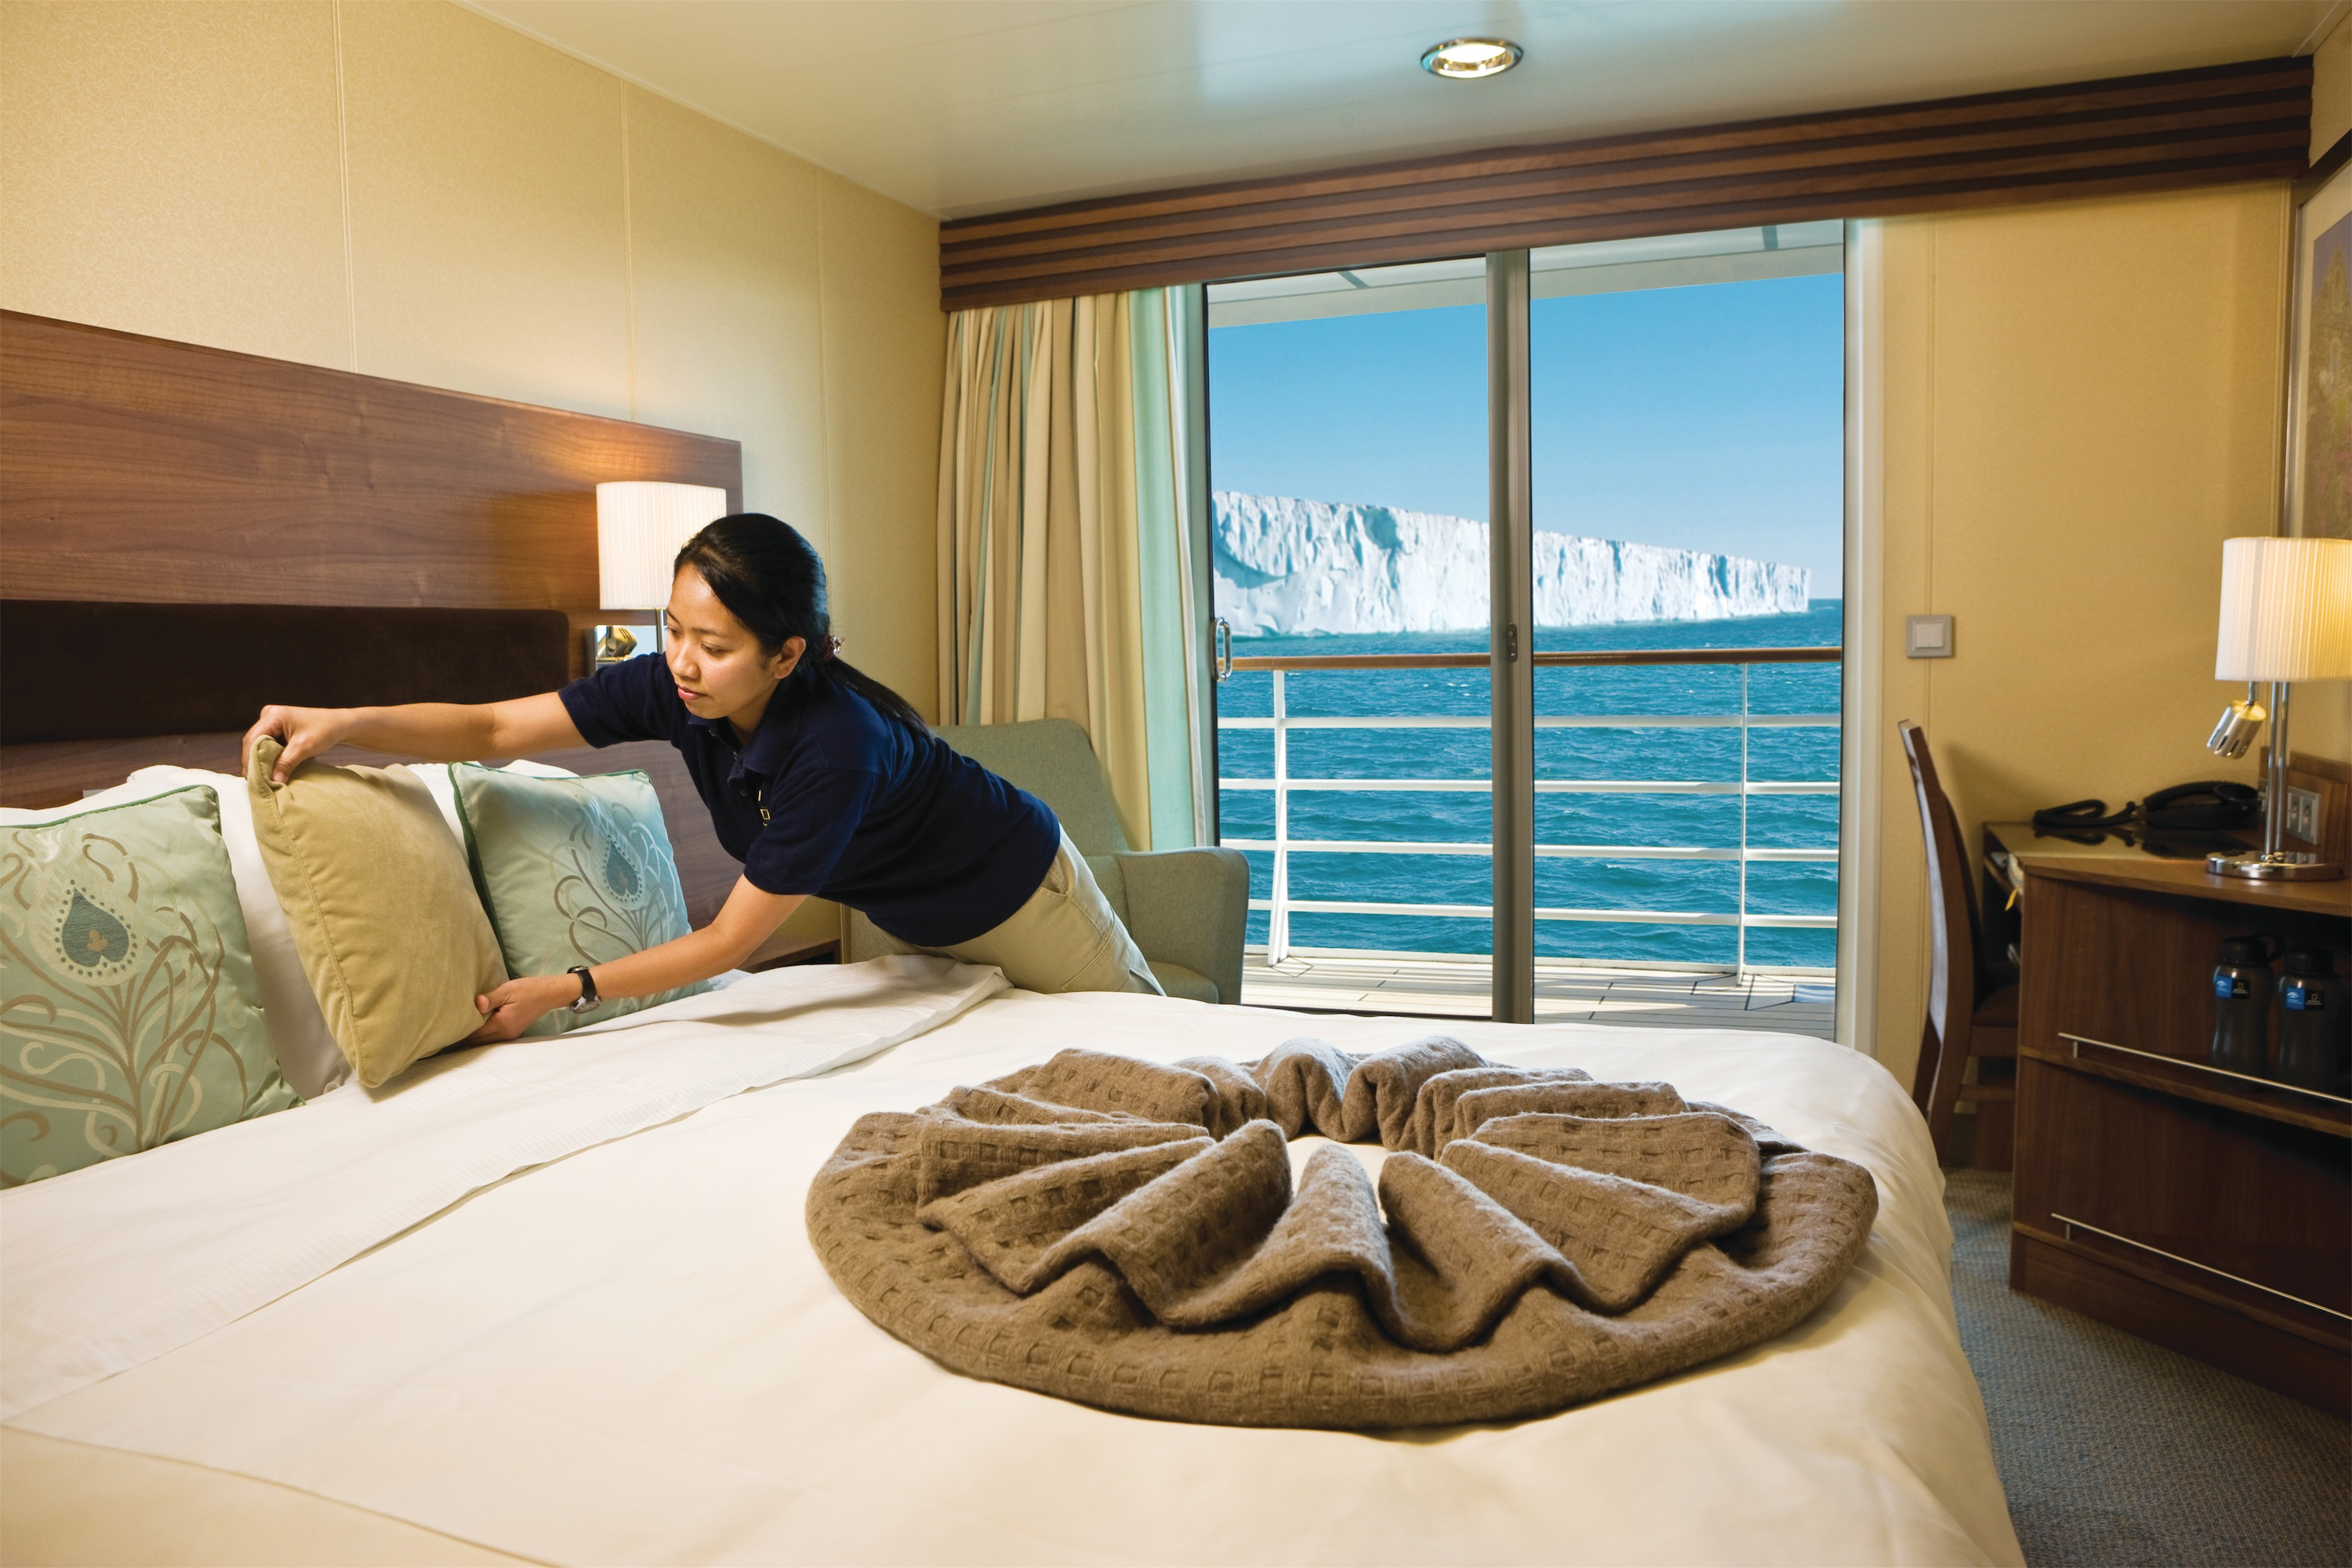 Lindblad Expeditions National Geographic Explorer Accommodation Upper Deck Cabin with Balcony.jpg